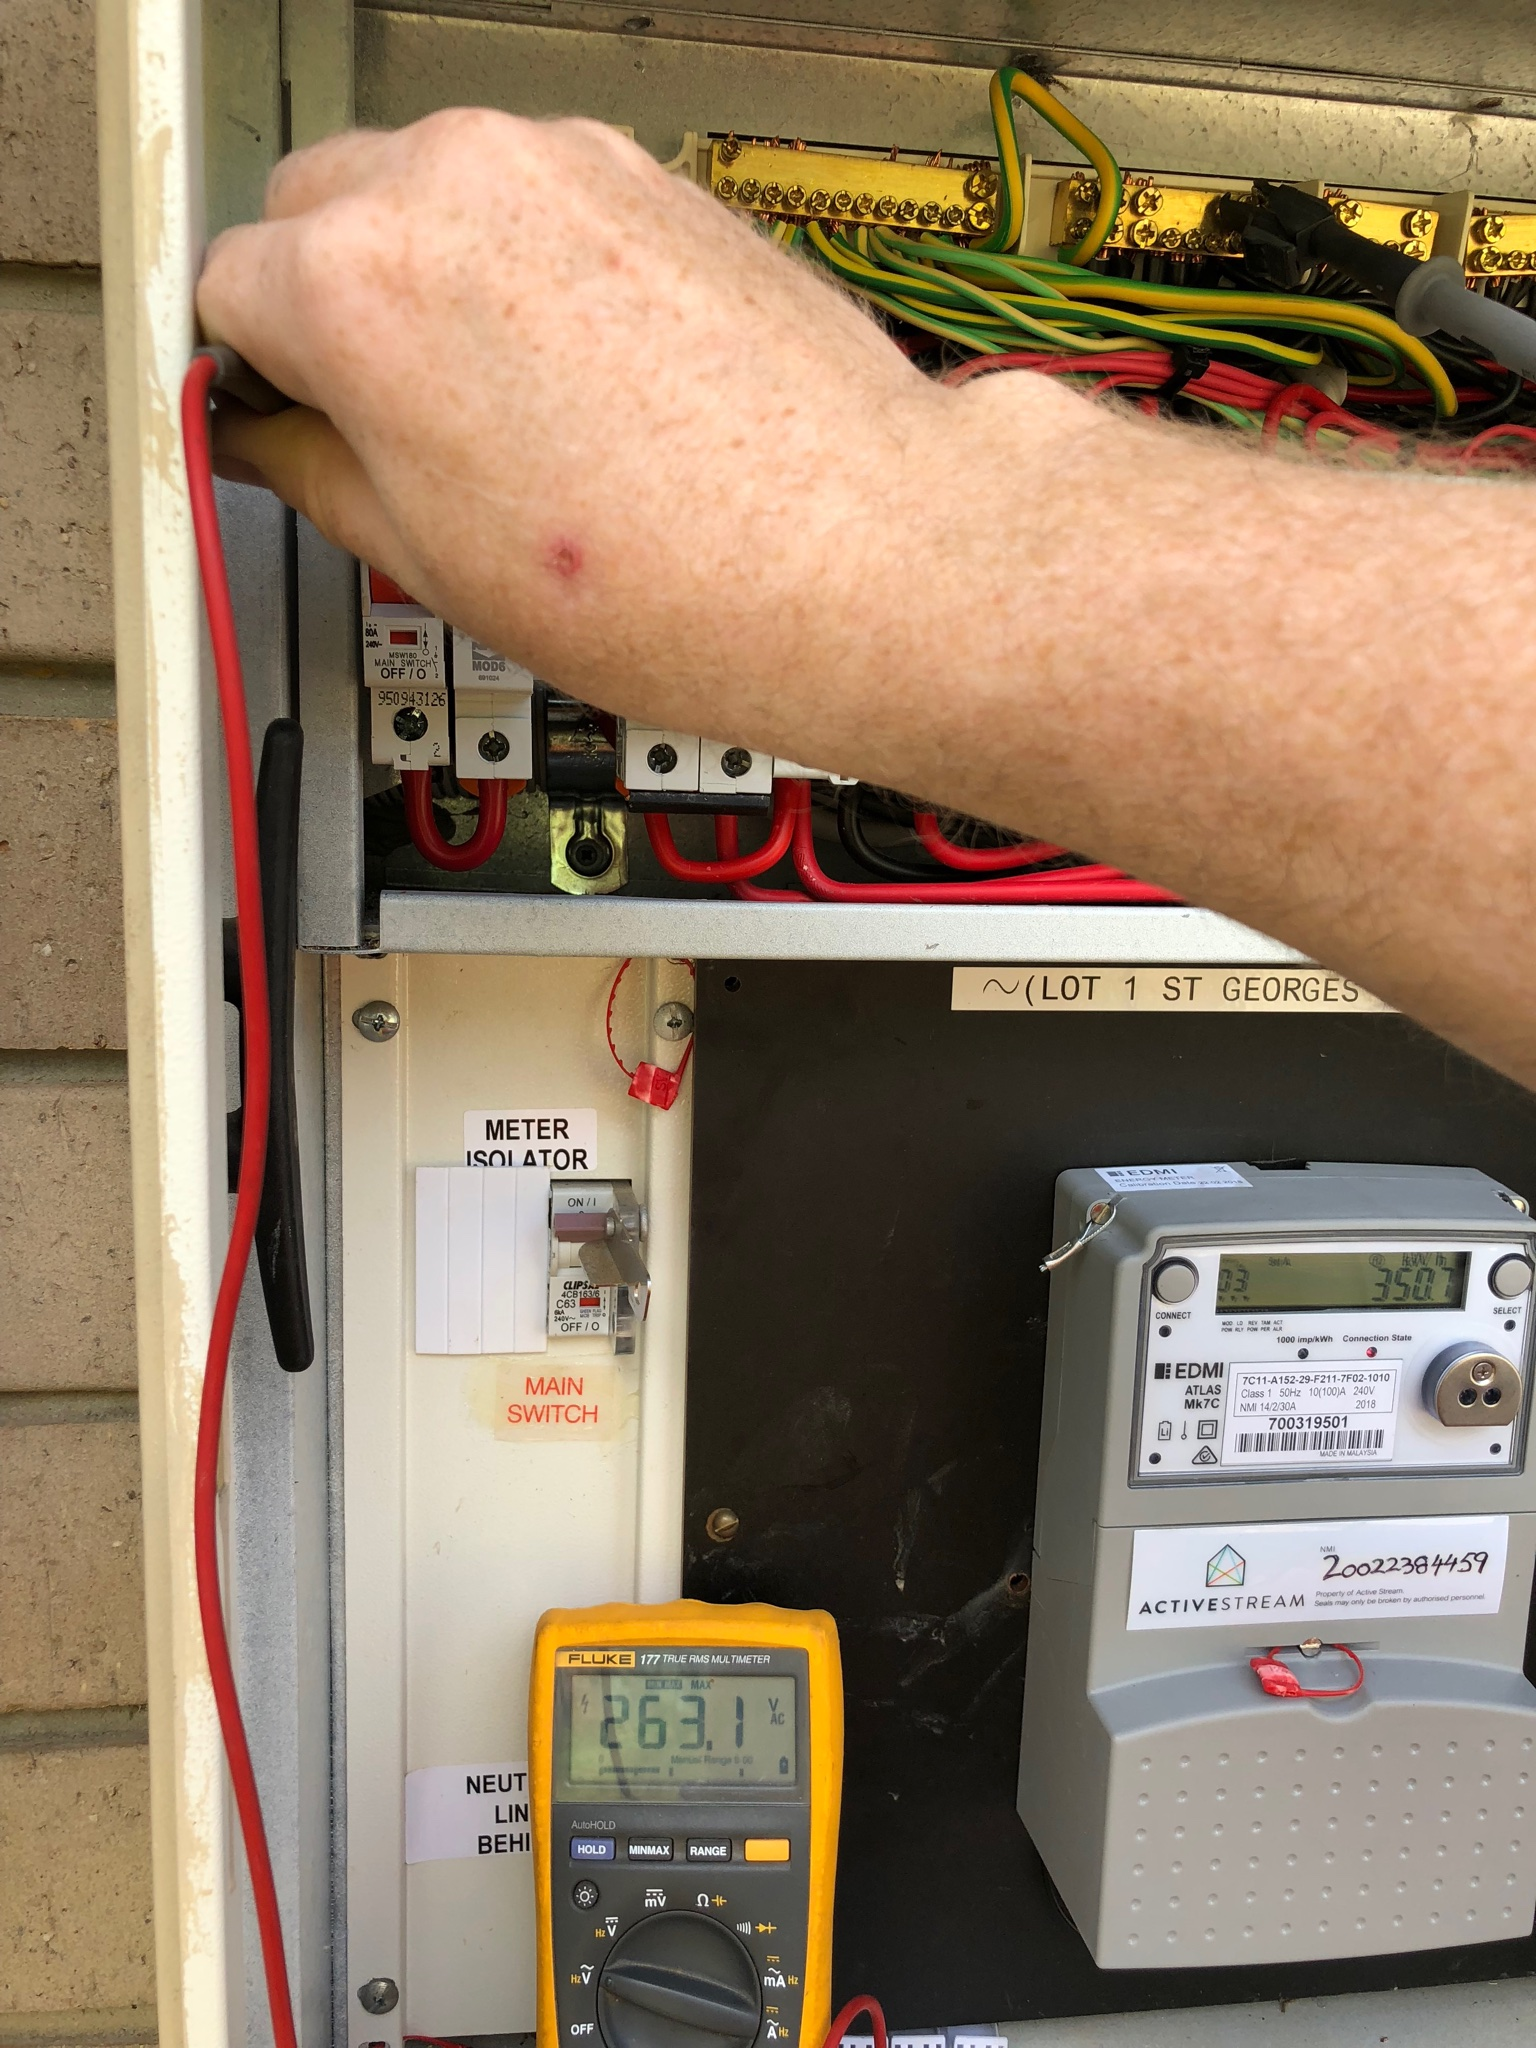 Australian standards say voltage should be between 216 - 253 volts. Higher voltages cause appliance damage and solar and battery lock-out.